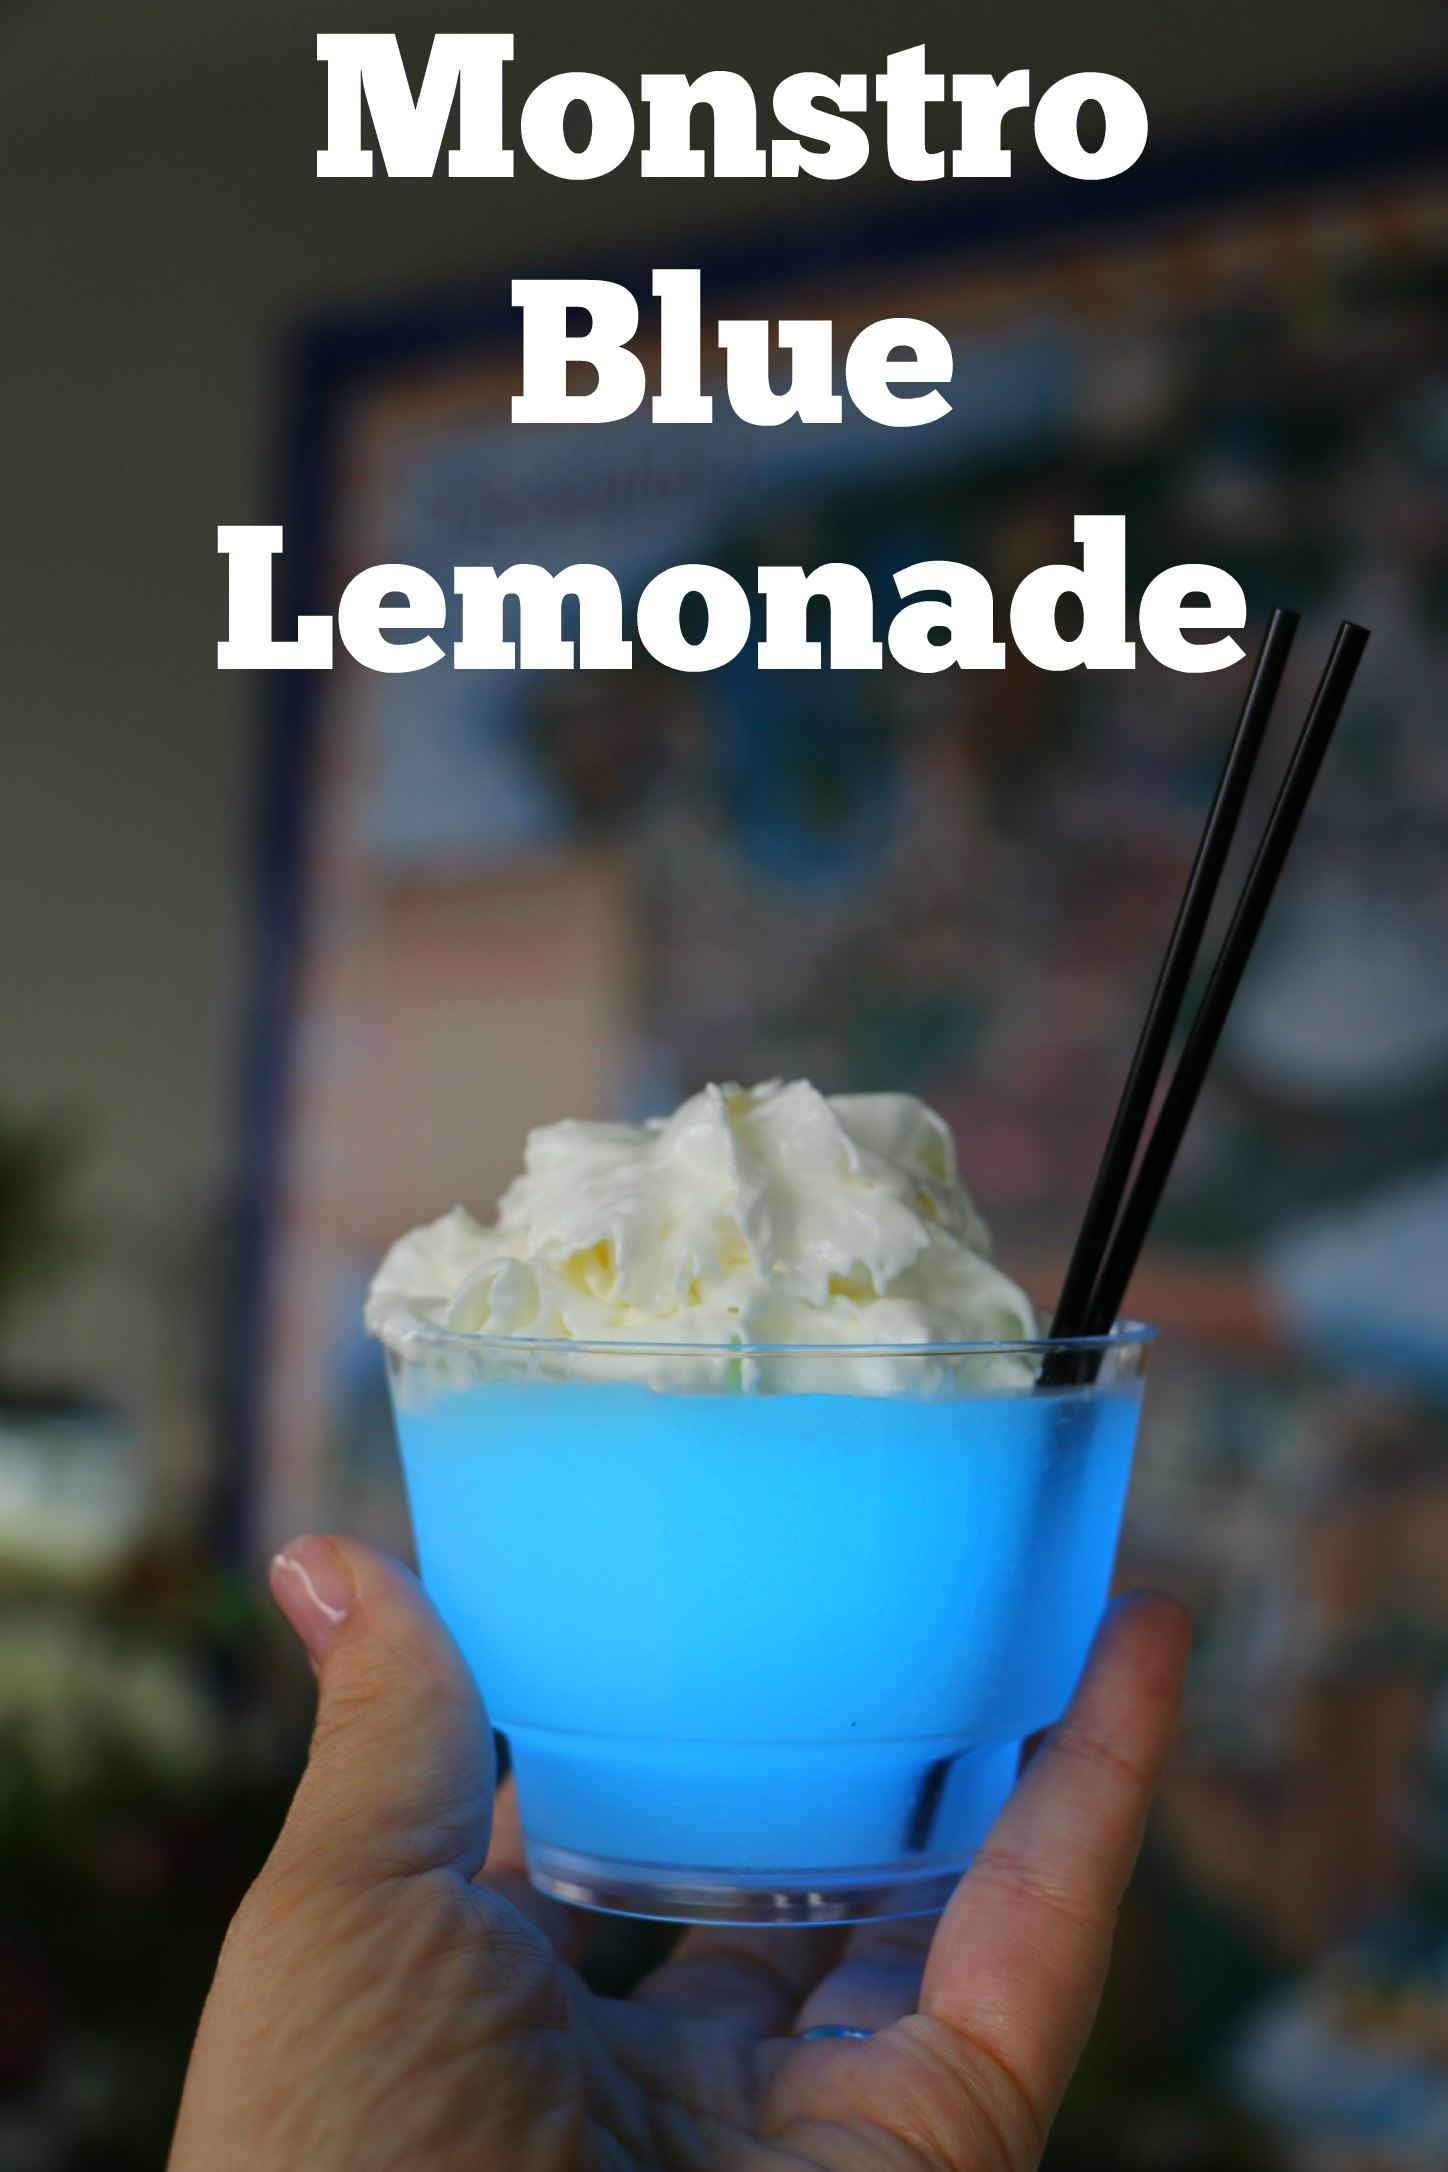 monstro blue lemonade